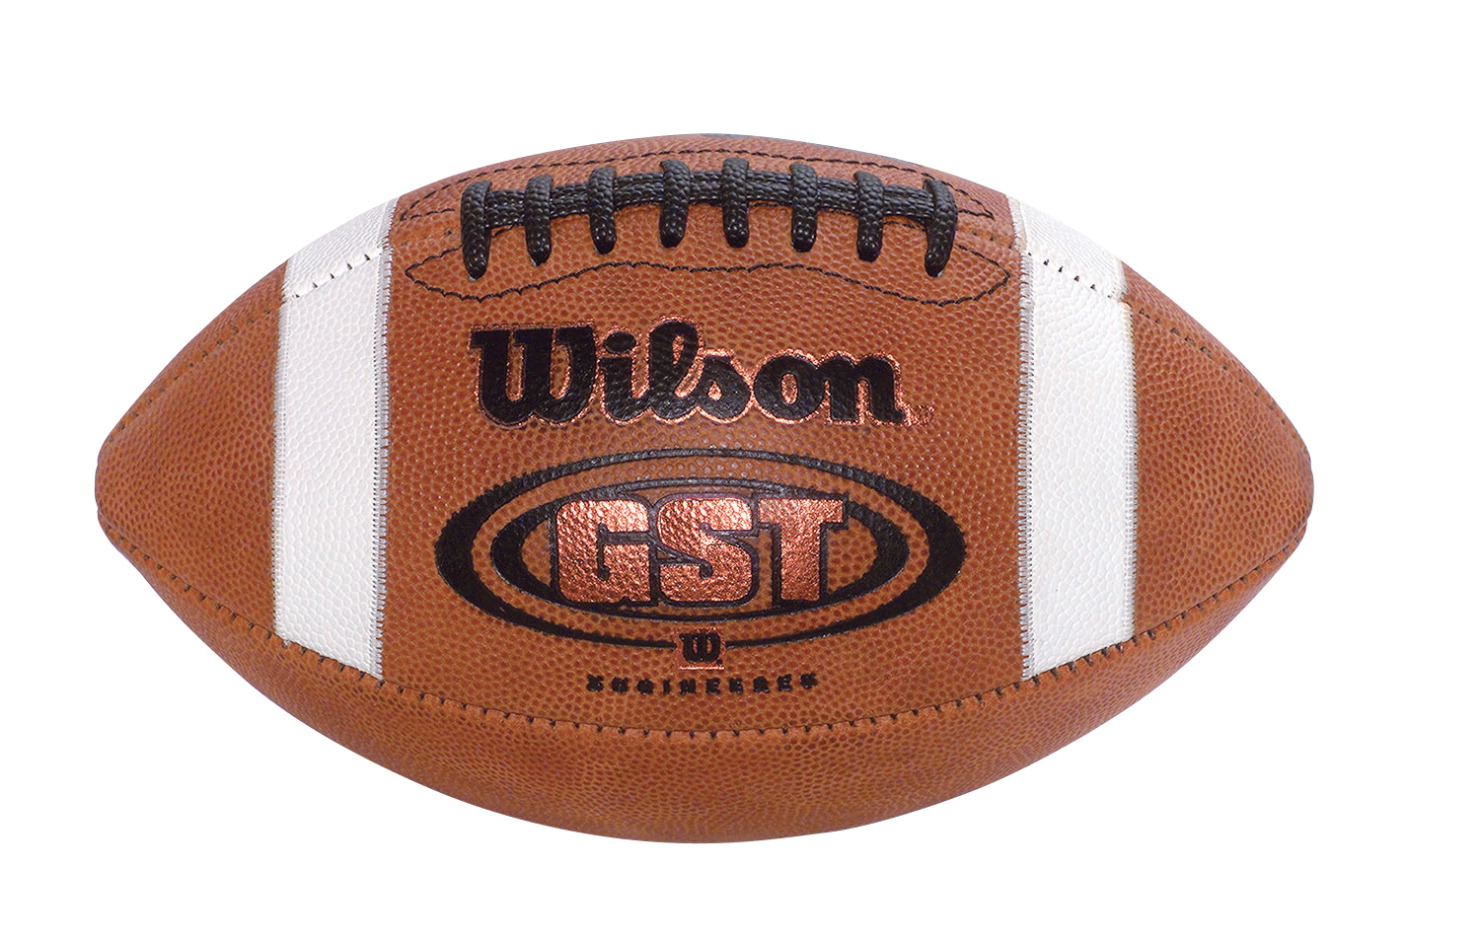 Wilson Gst Nfhs Regulation Size Leather Football